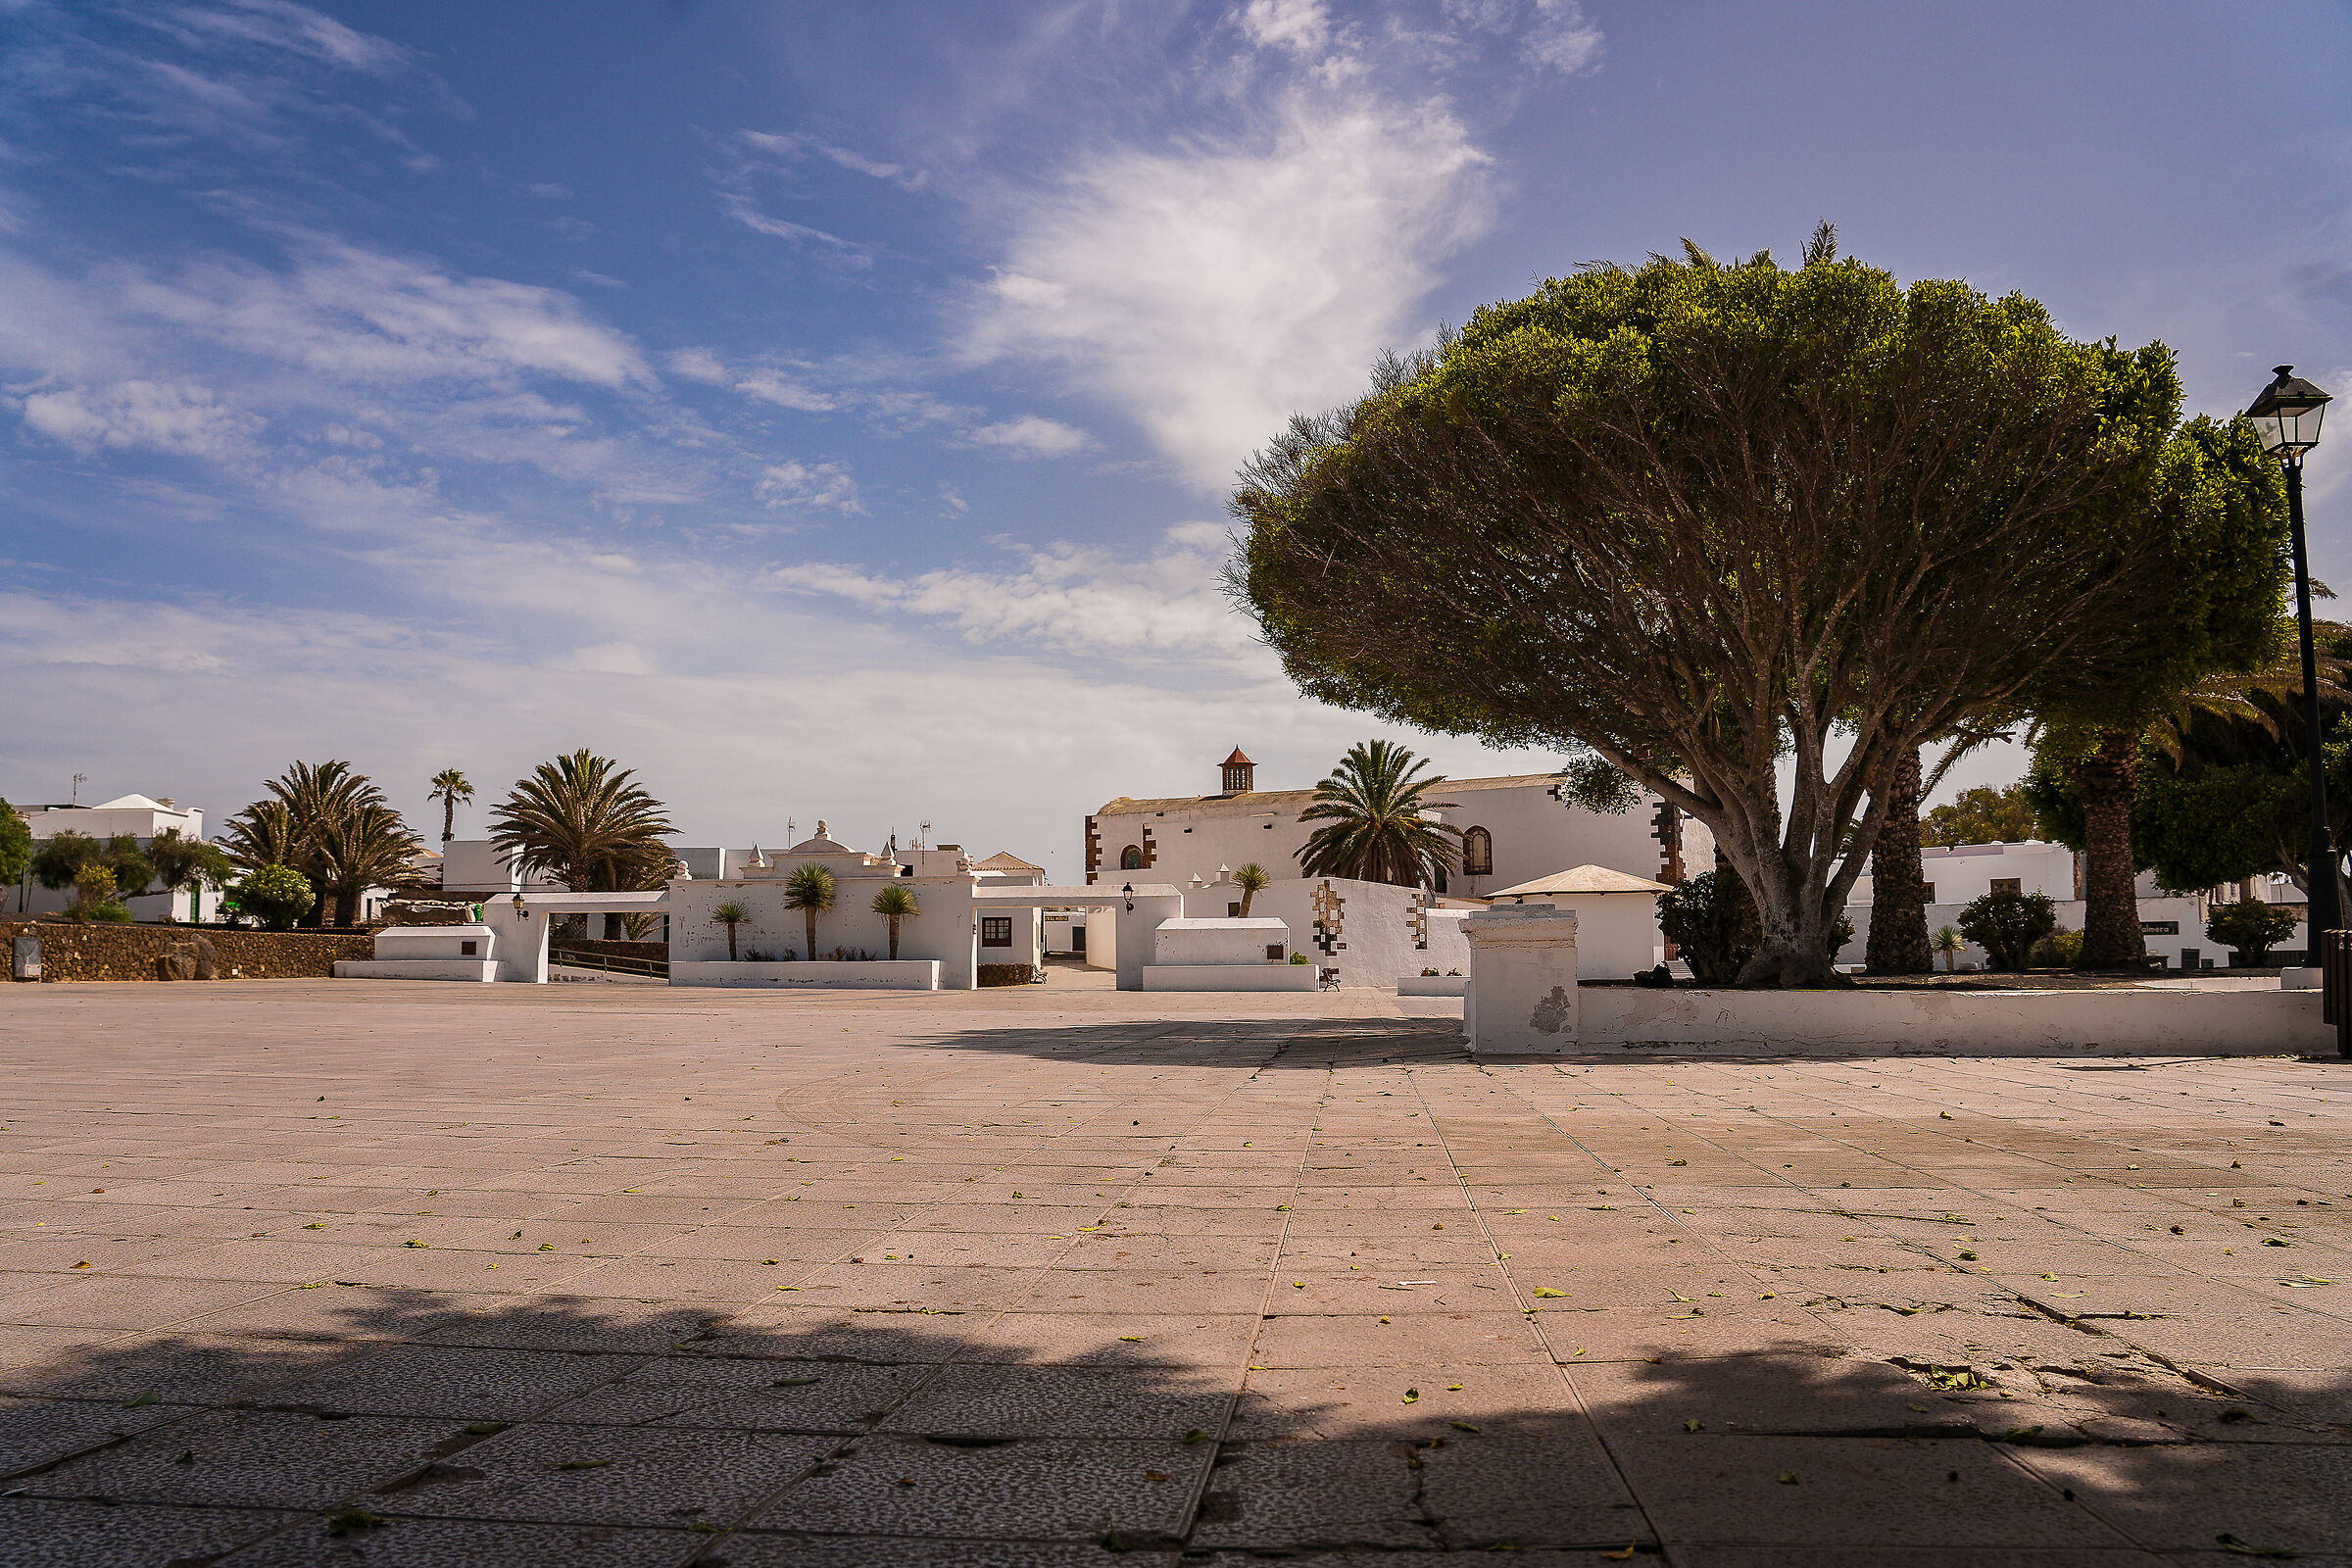 Teguise...